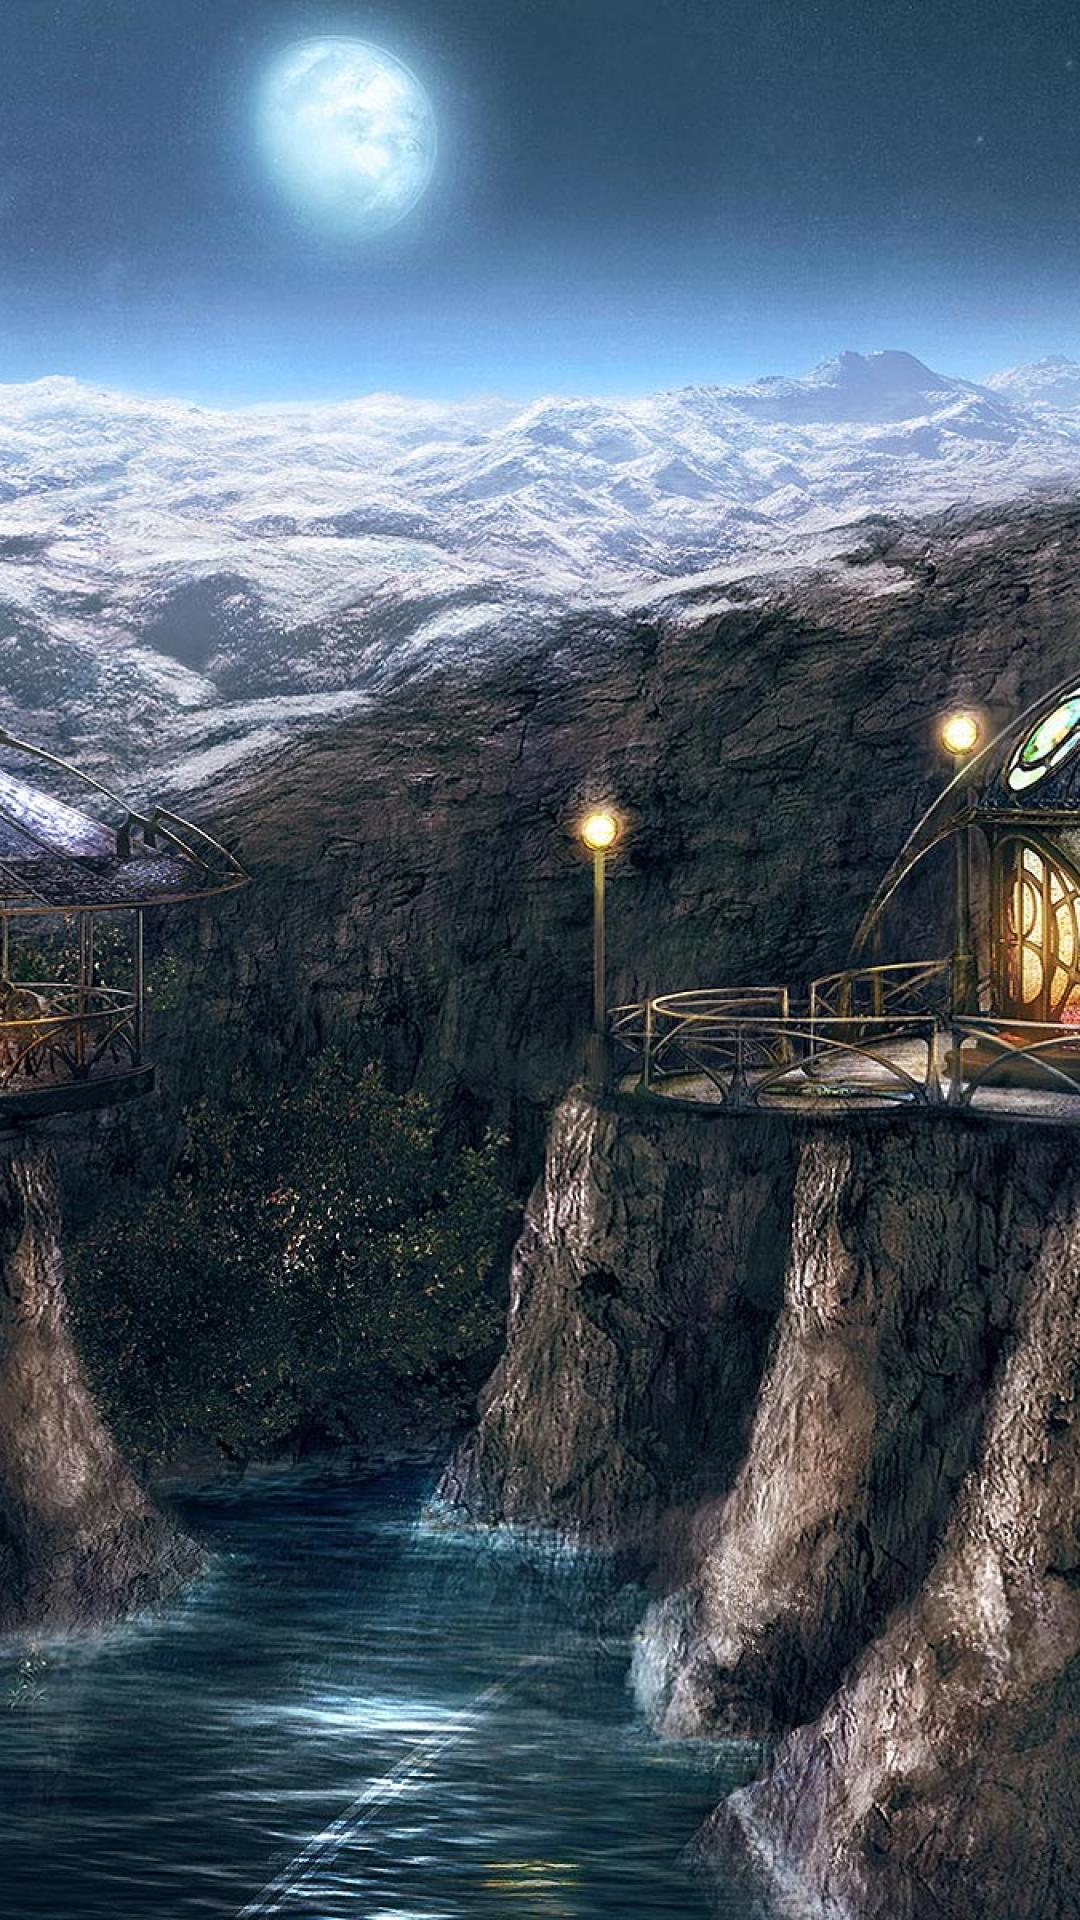 Myst Wallpaper High Definition - WallpaperSafari